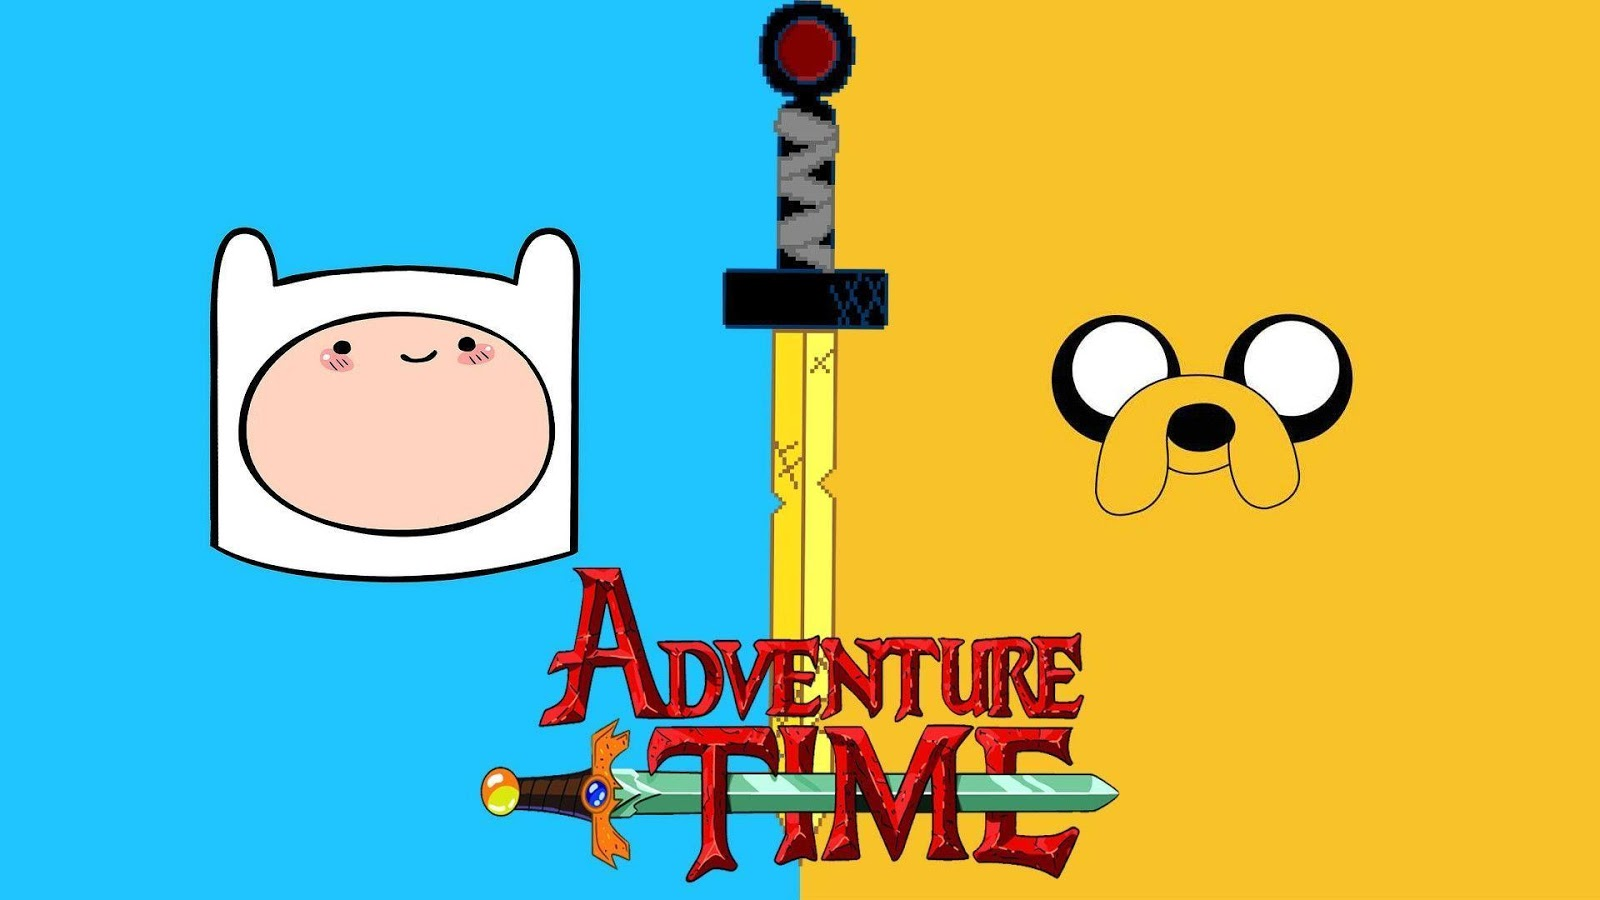 Adventure Time Wallpapers 1080p HD